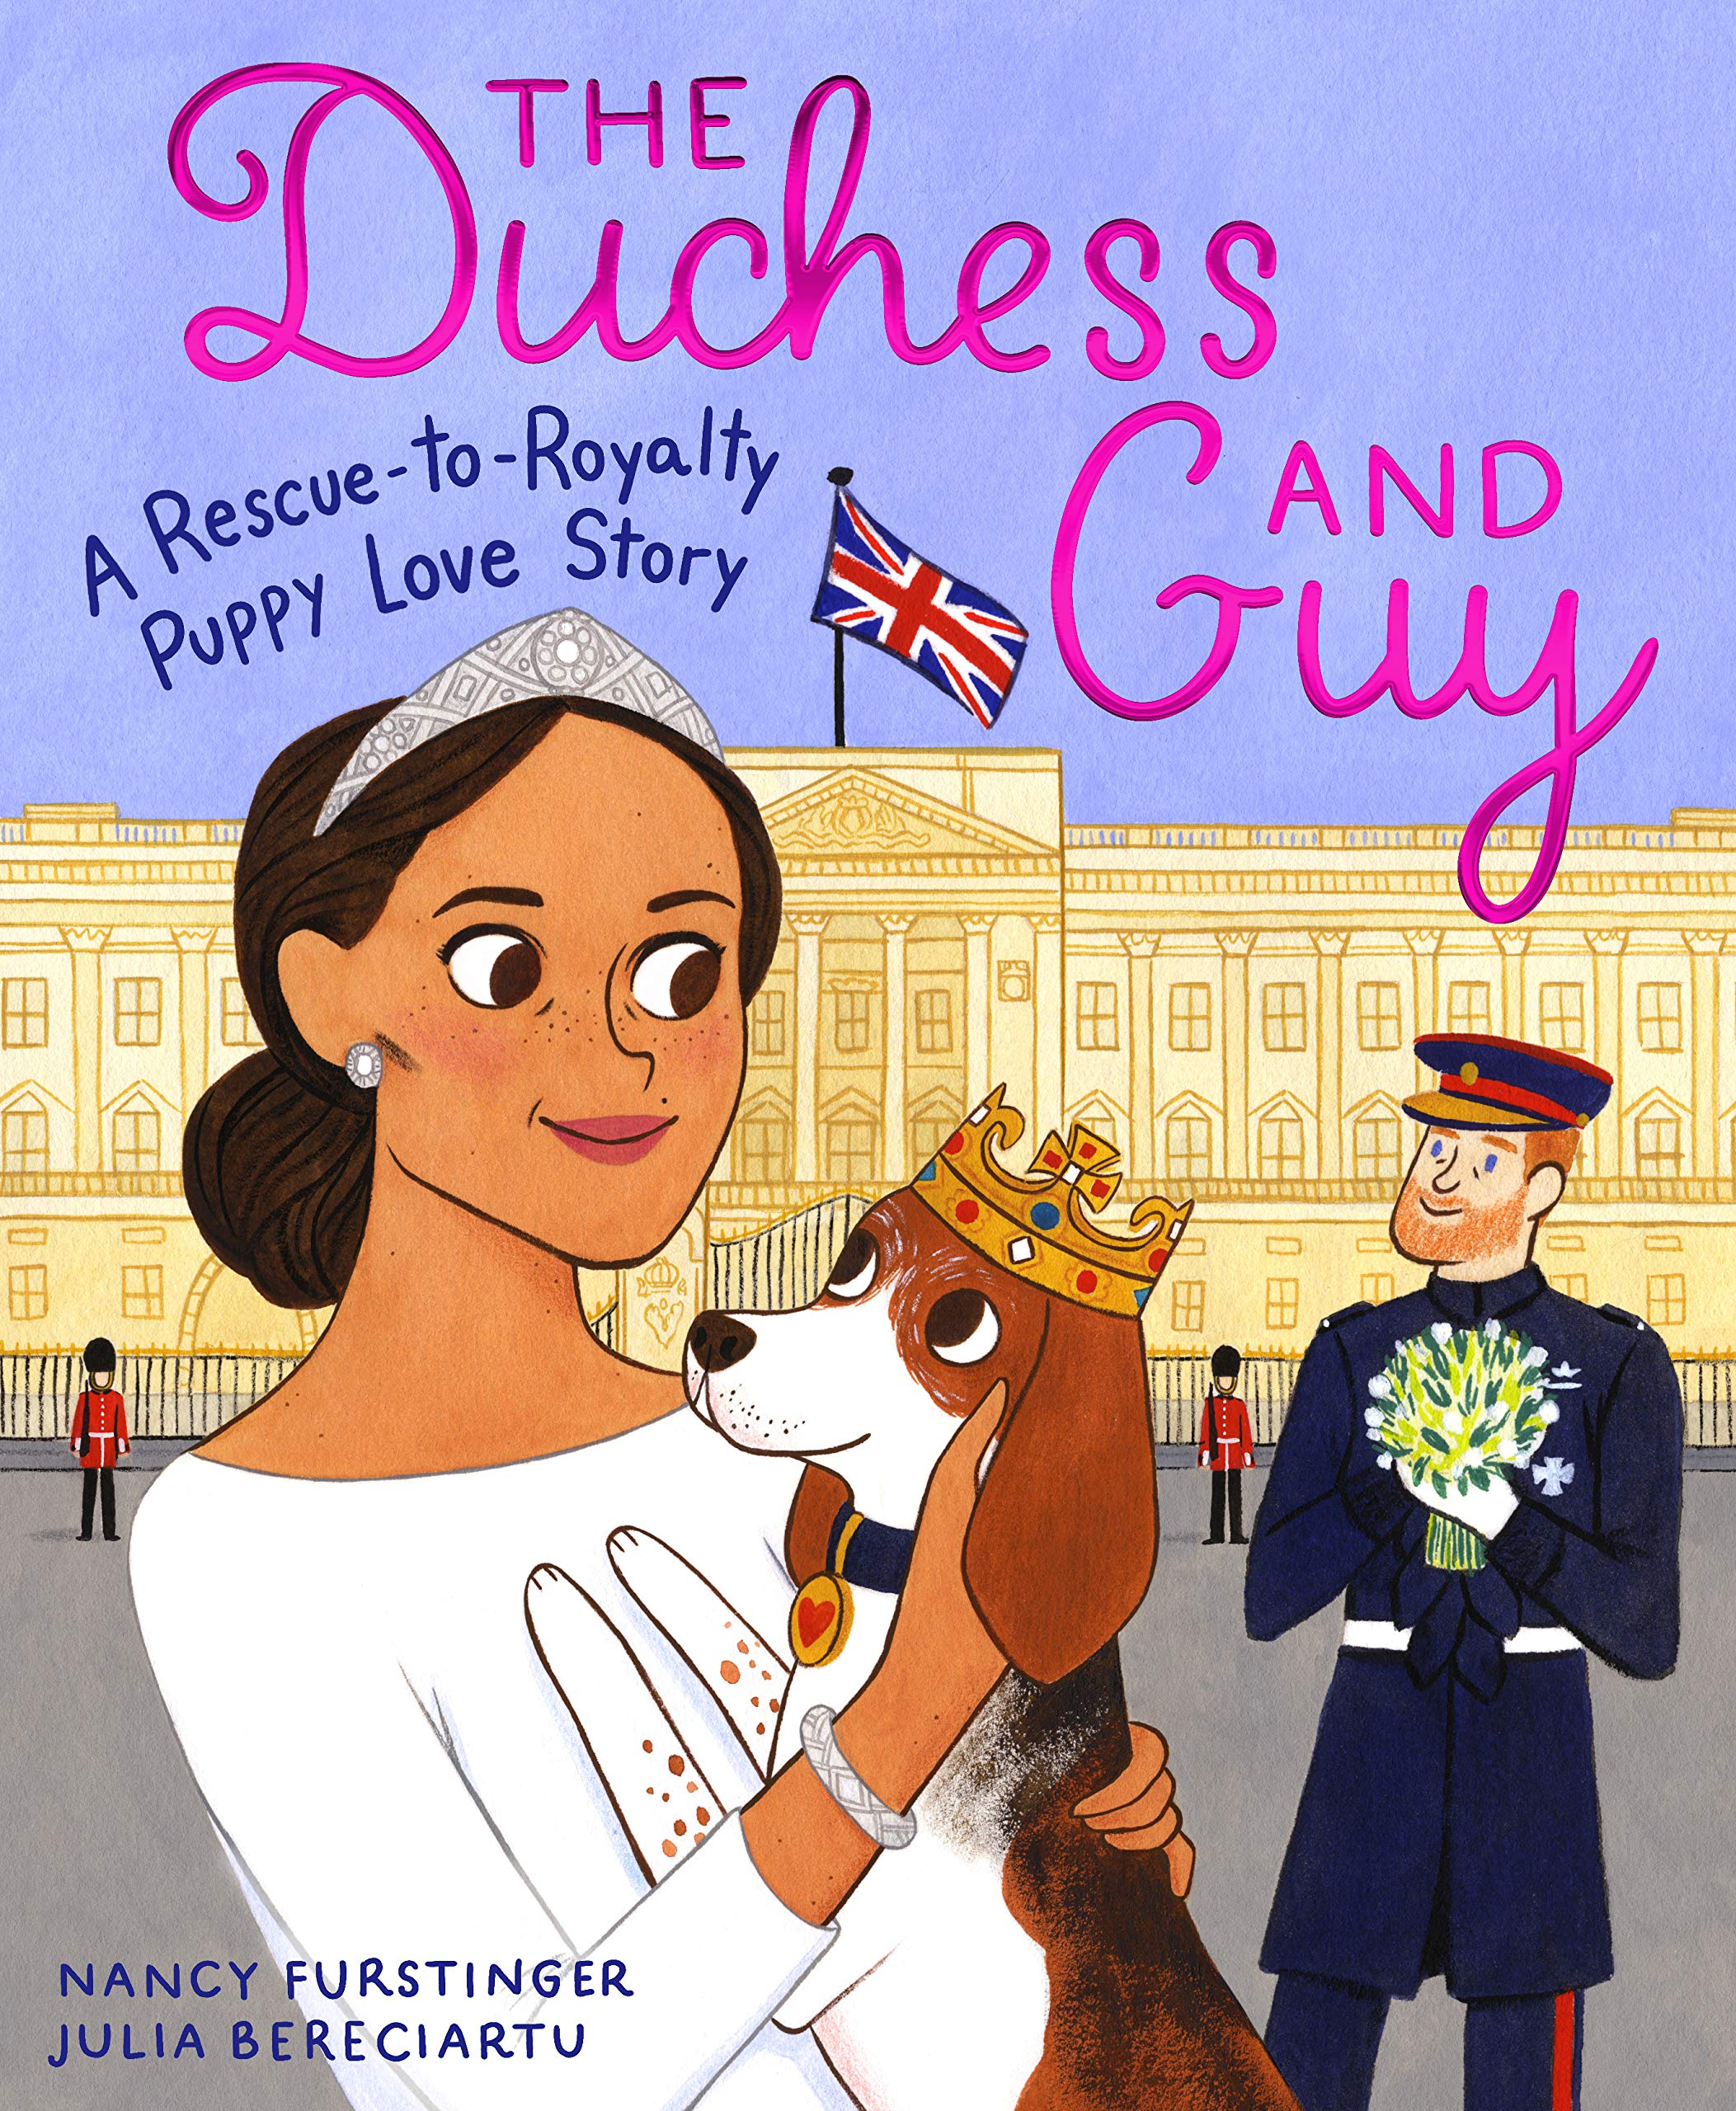 The Duchess and Guy: A Rescue-to-Royalty Puppy Love Story: Nancy